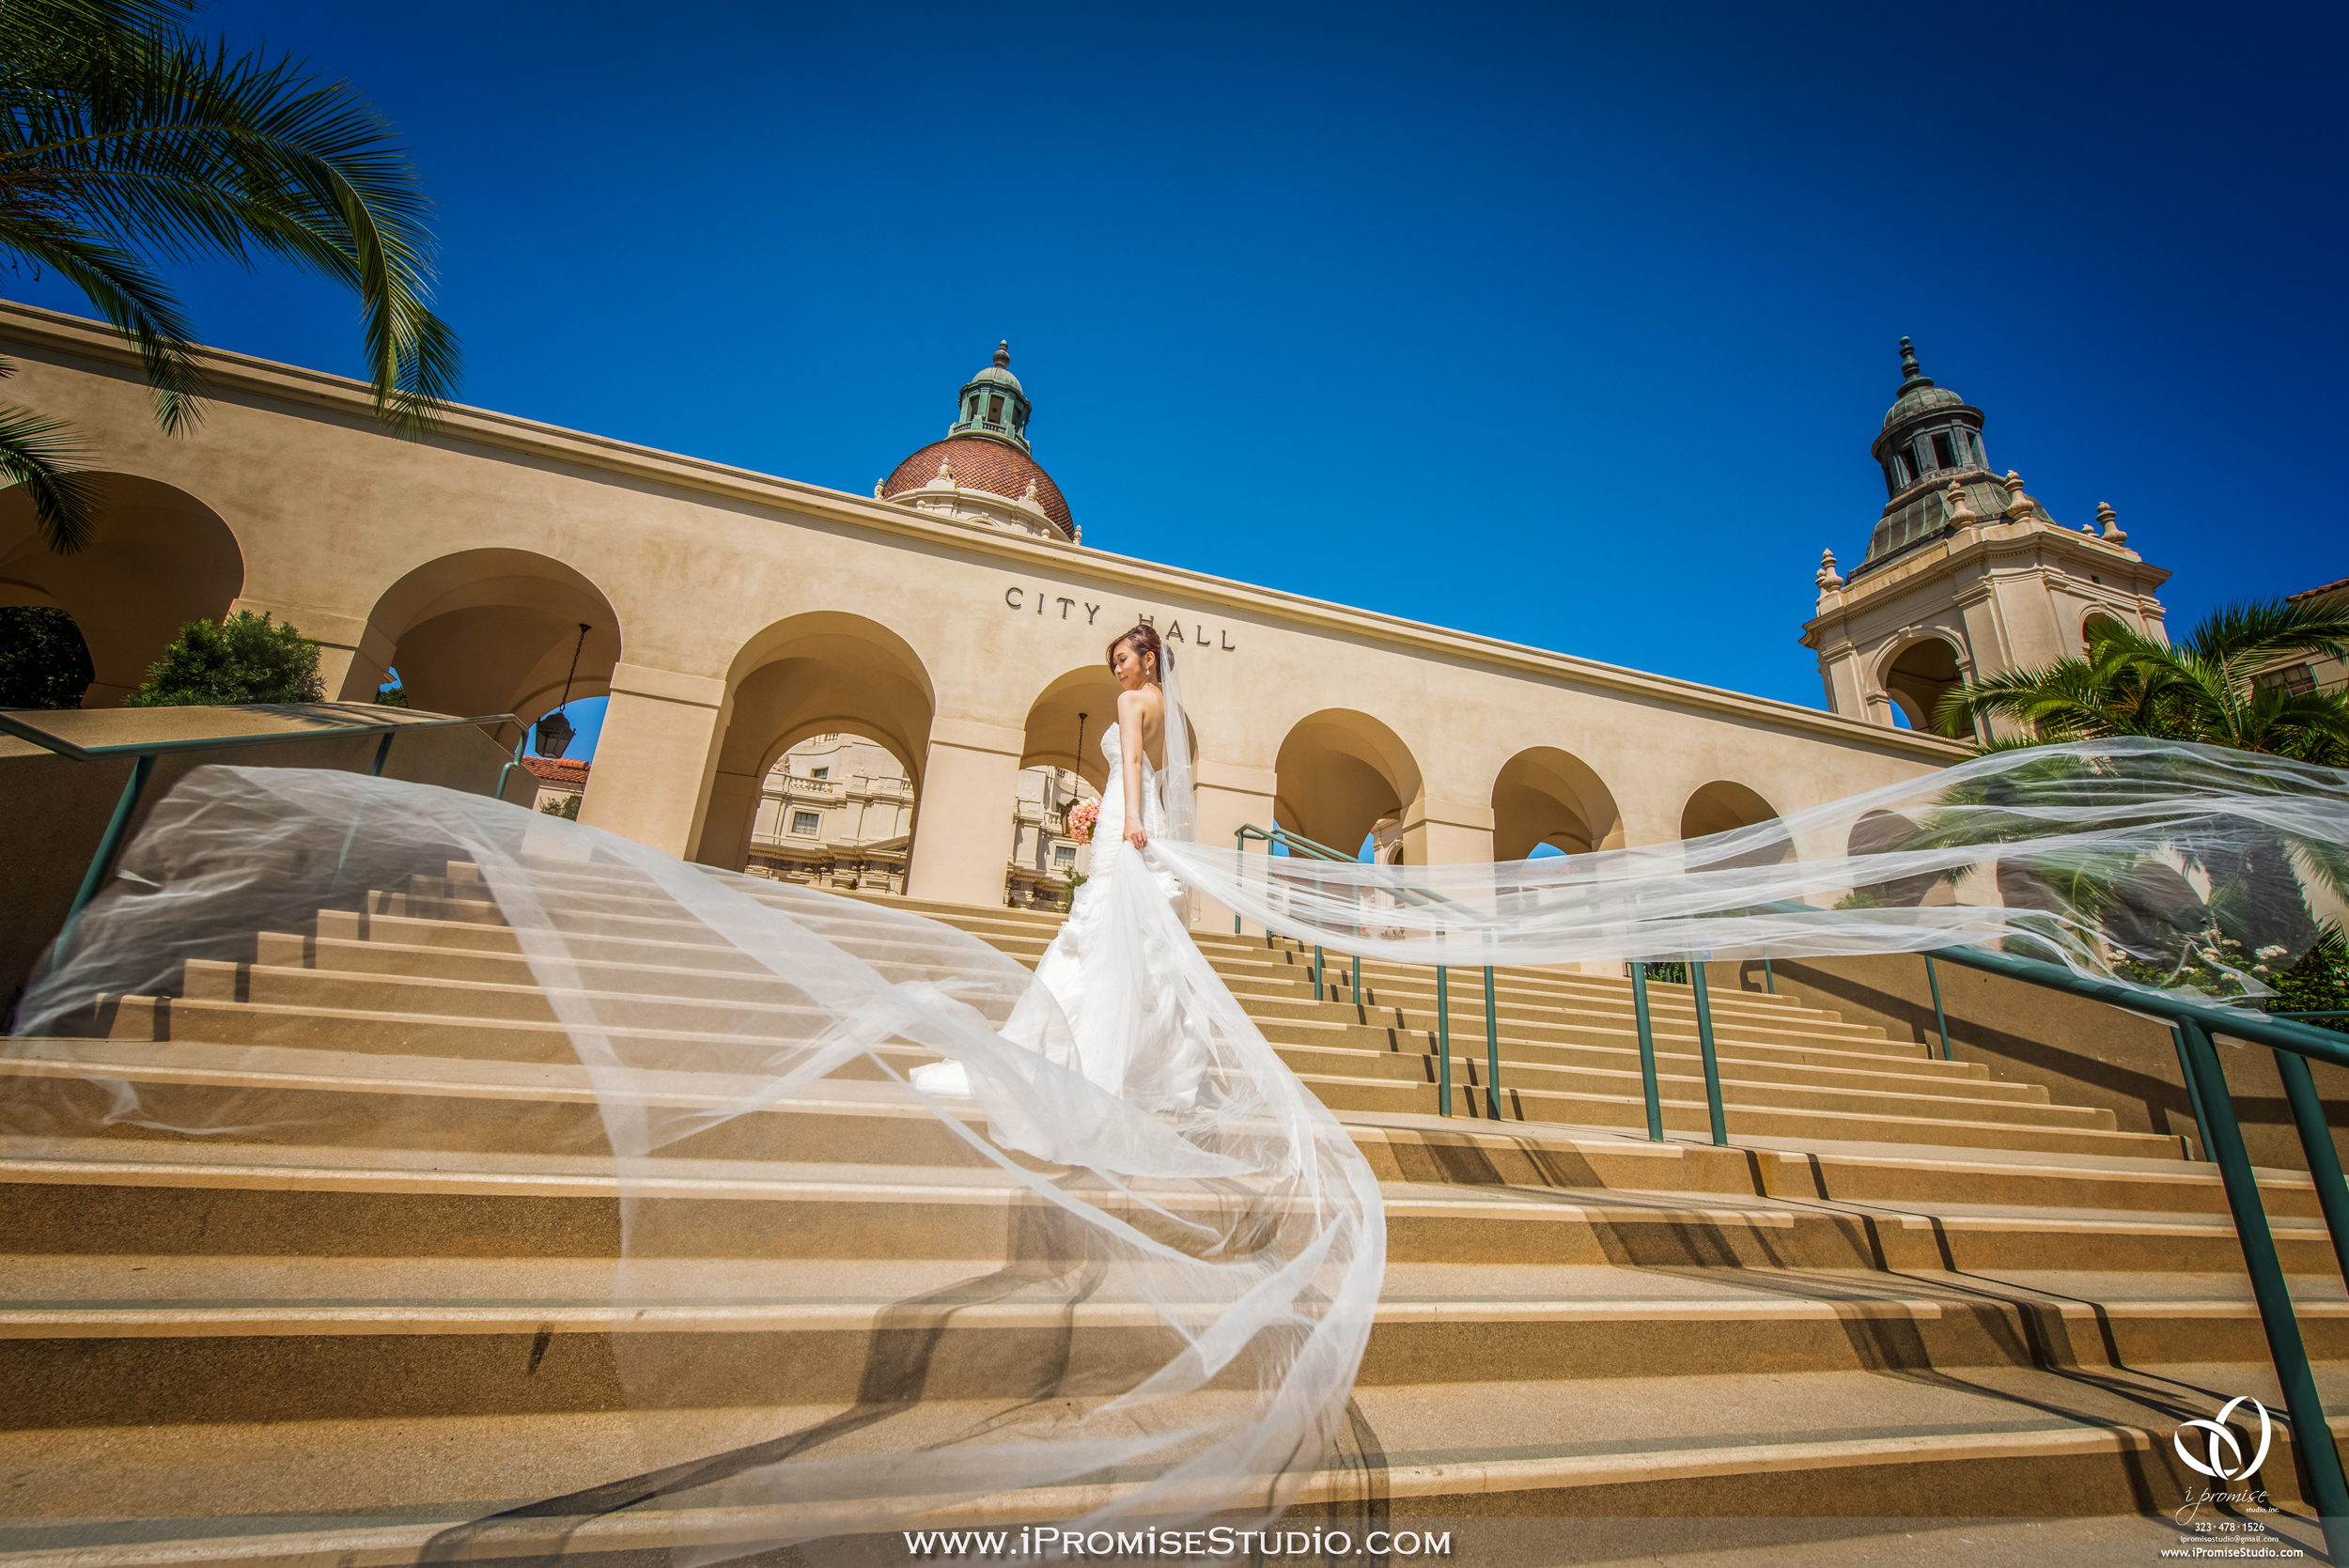 Pasadena Cityhall engagement wedding 13.JPG